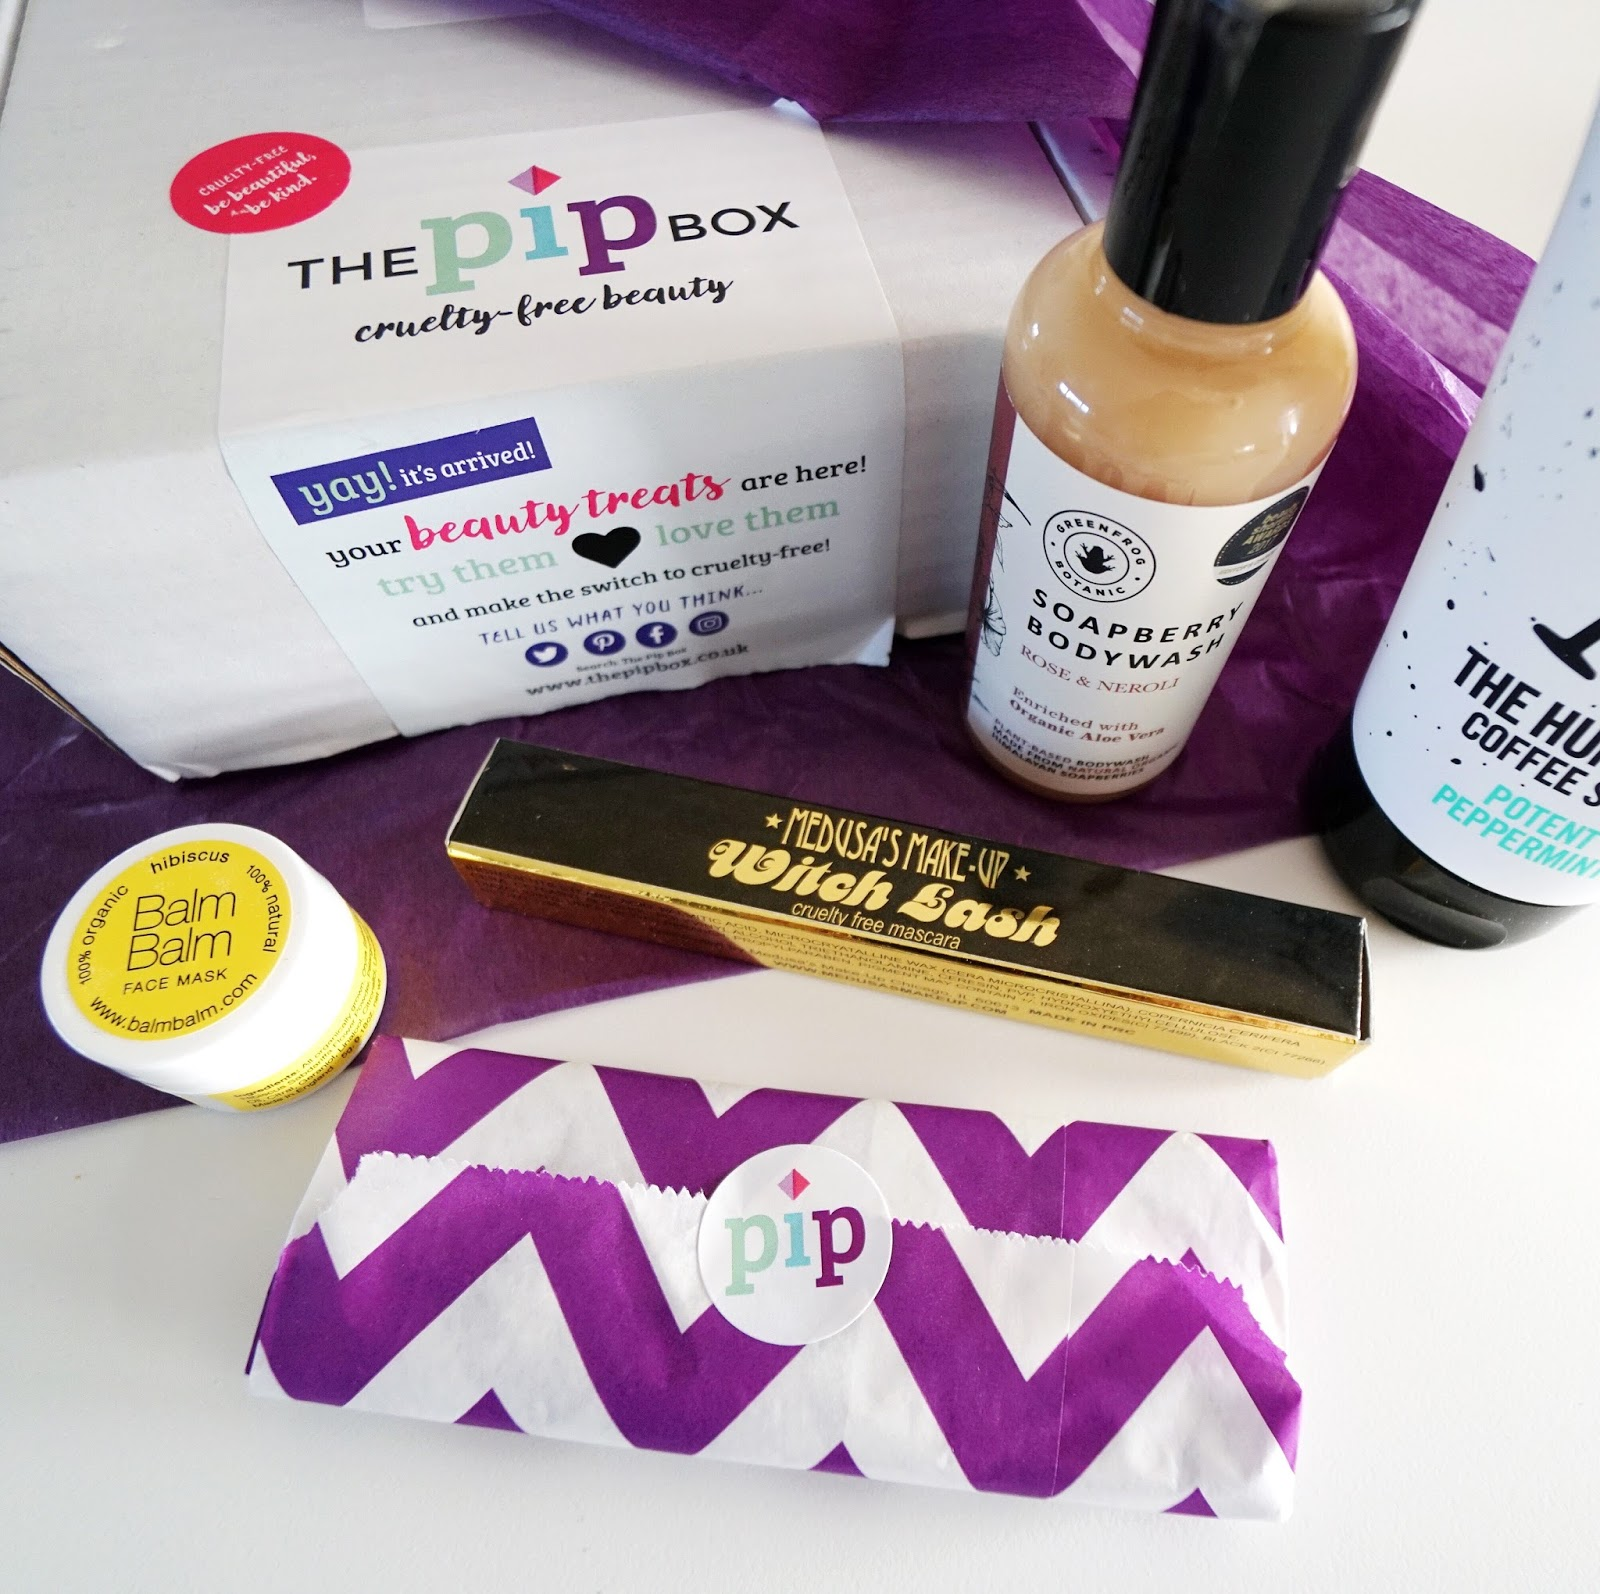 The Pip Box Competition Cruelty Free Ad Sarah Kirby